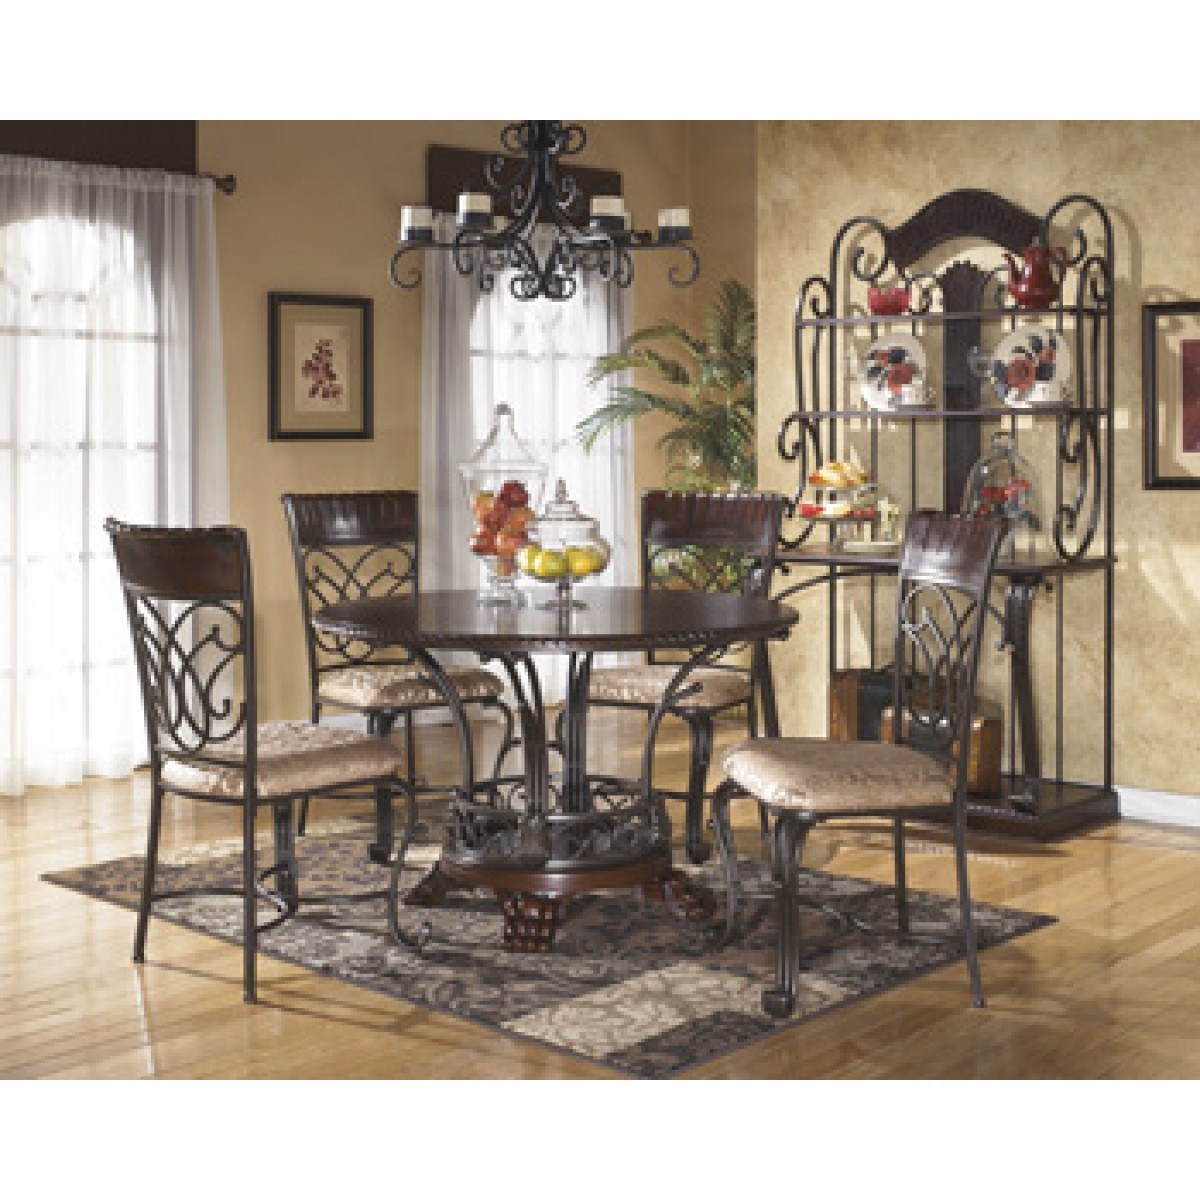 dining room set ashley furniture table and chairs tables furniturepiece living buffets high quality accent full size dale lamp wood farm counter height tall mirrored dresser low